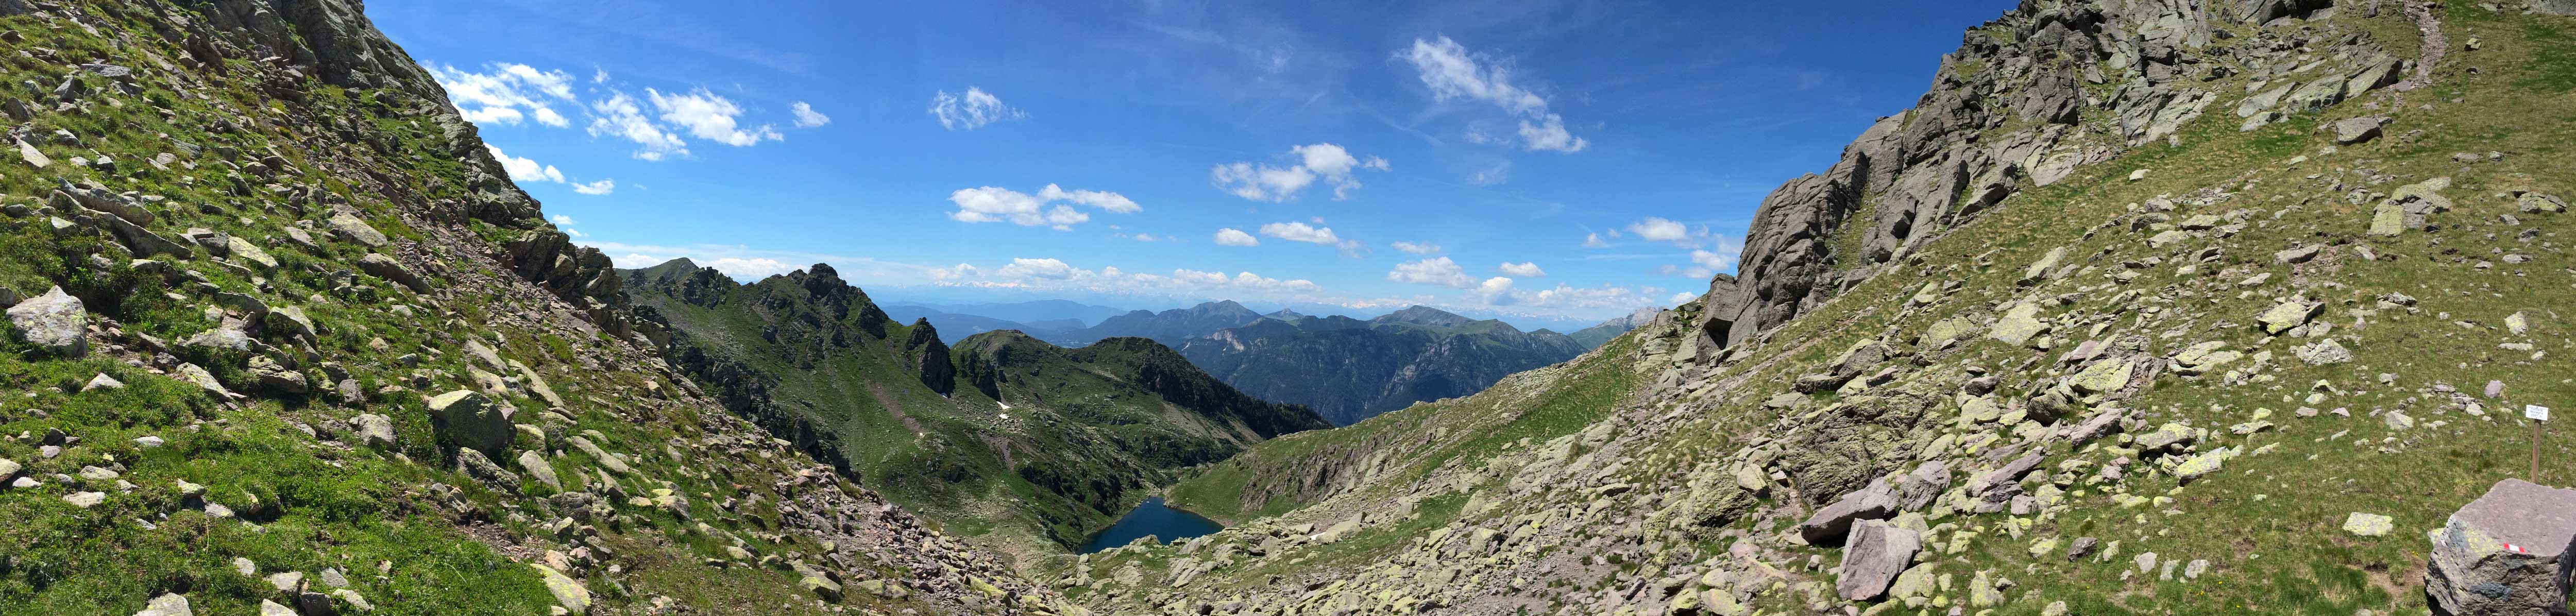 Lago Brutto visto da Forcella Moregna